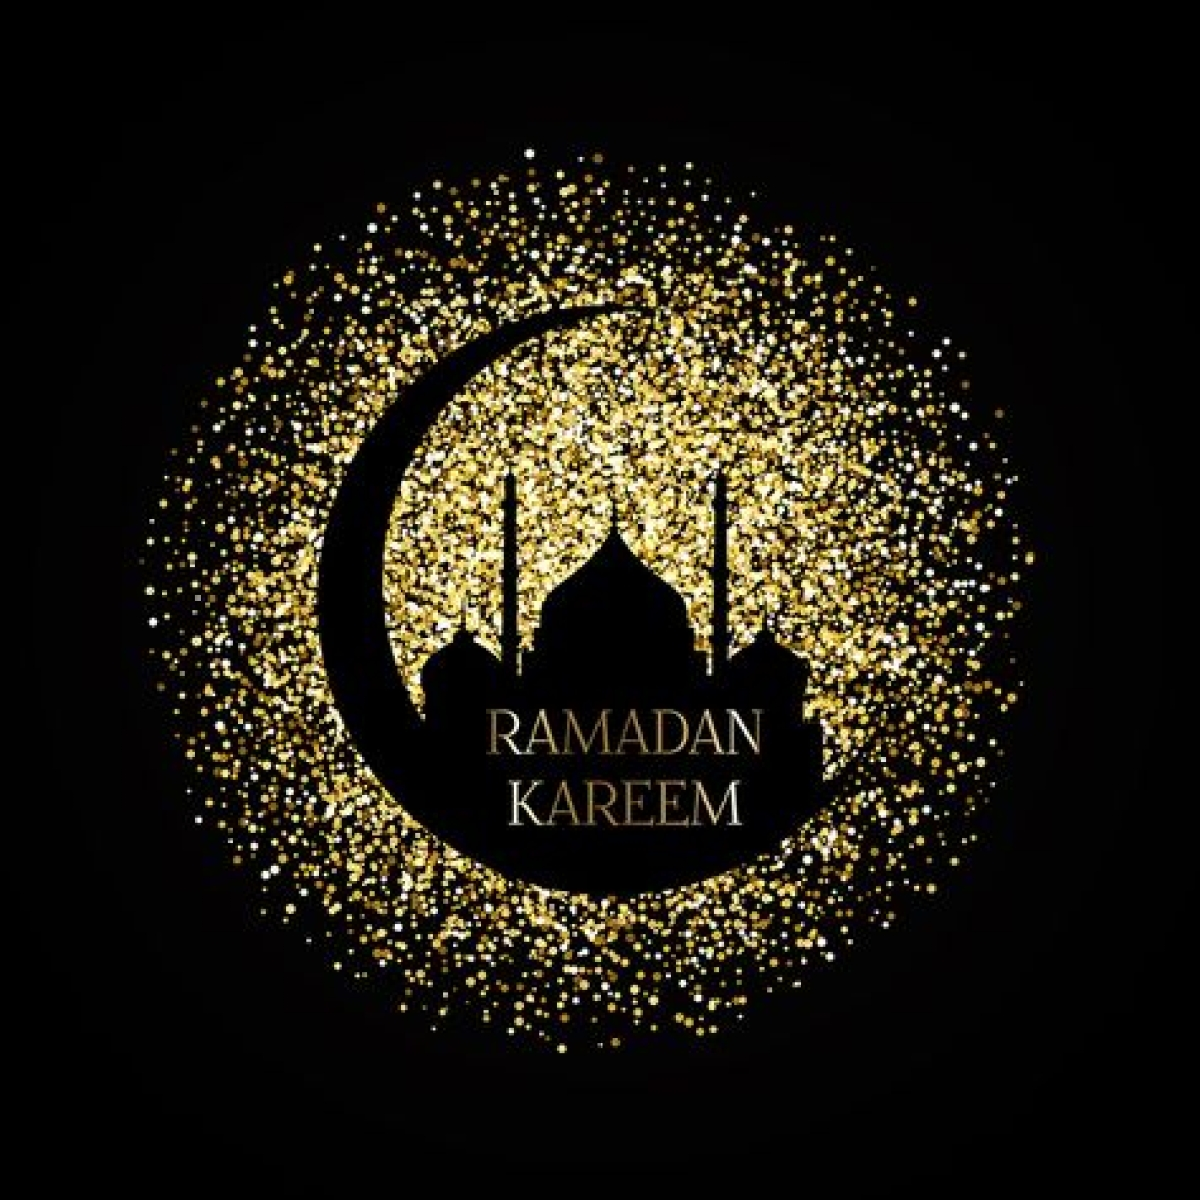 Ramadan 2020: Ramadan Kareem WhatsApp images and messages to send to your loved ones